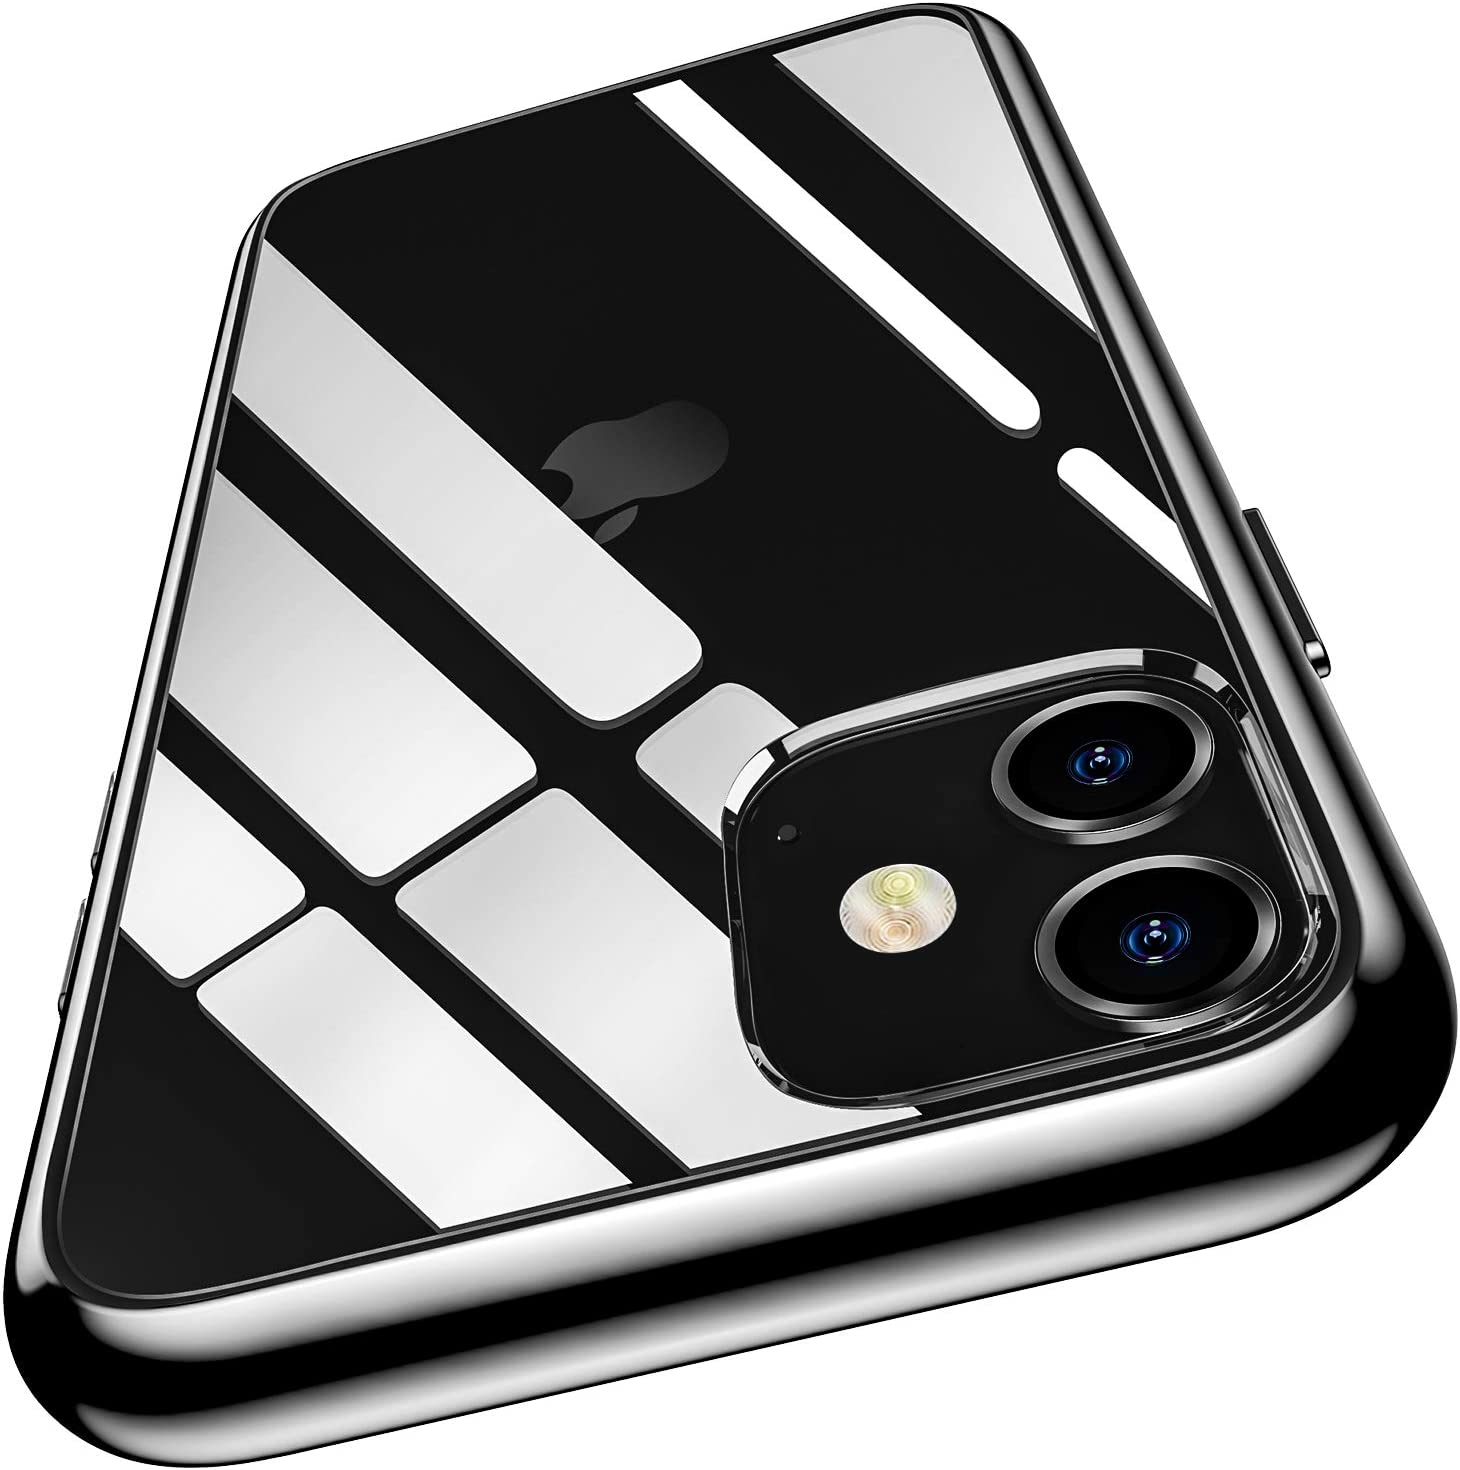 Meifigno Natural Series iPhone 11 Case [Anti-Yellow], Clear Hard PC with Black Soft Edges, Protective Clear Case Compatible with iPhone 11 6.1 inch (2019), Black